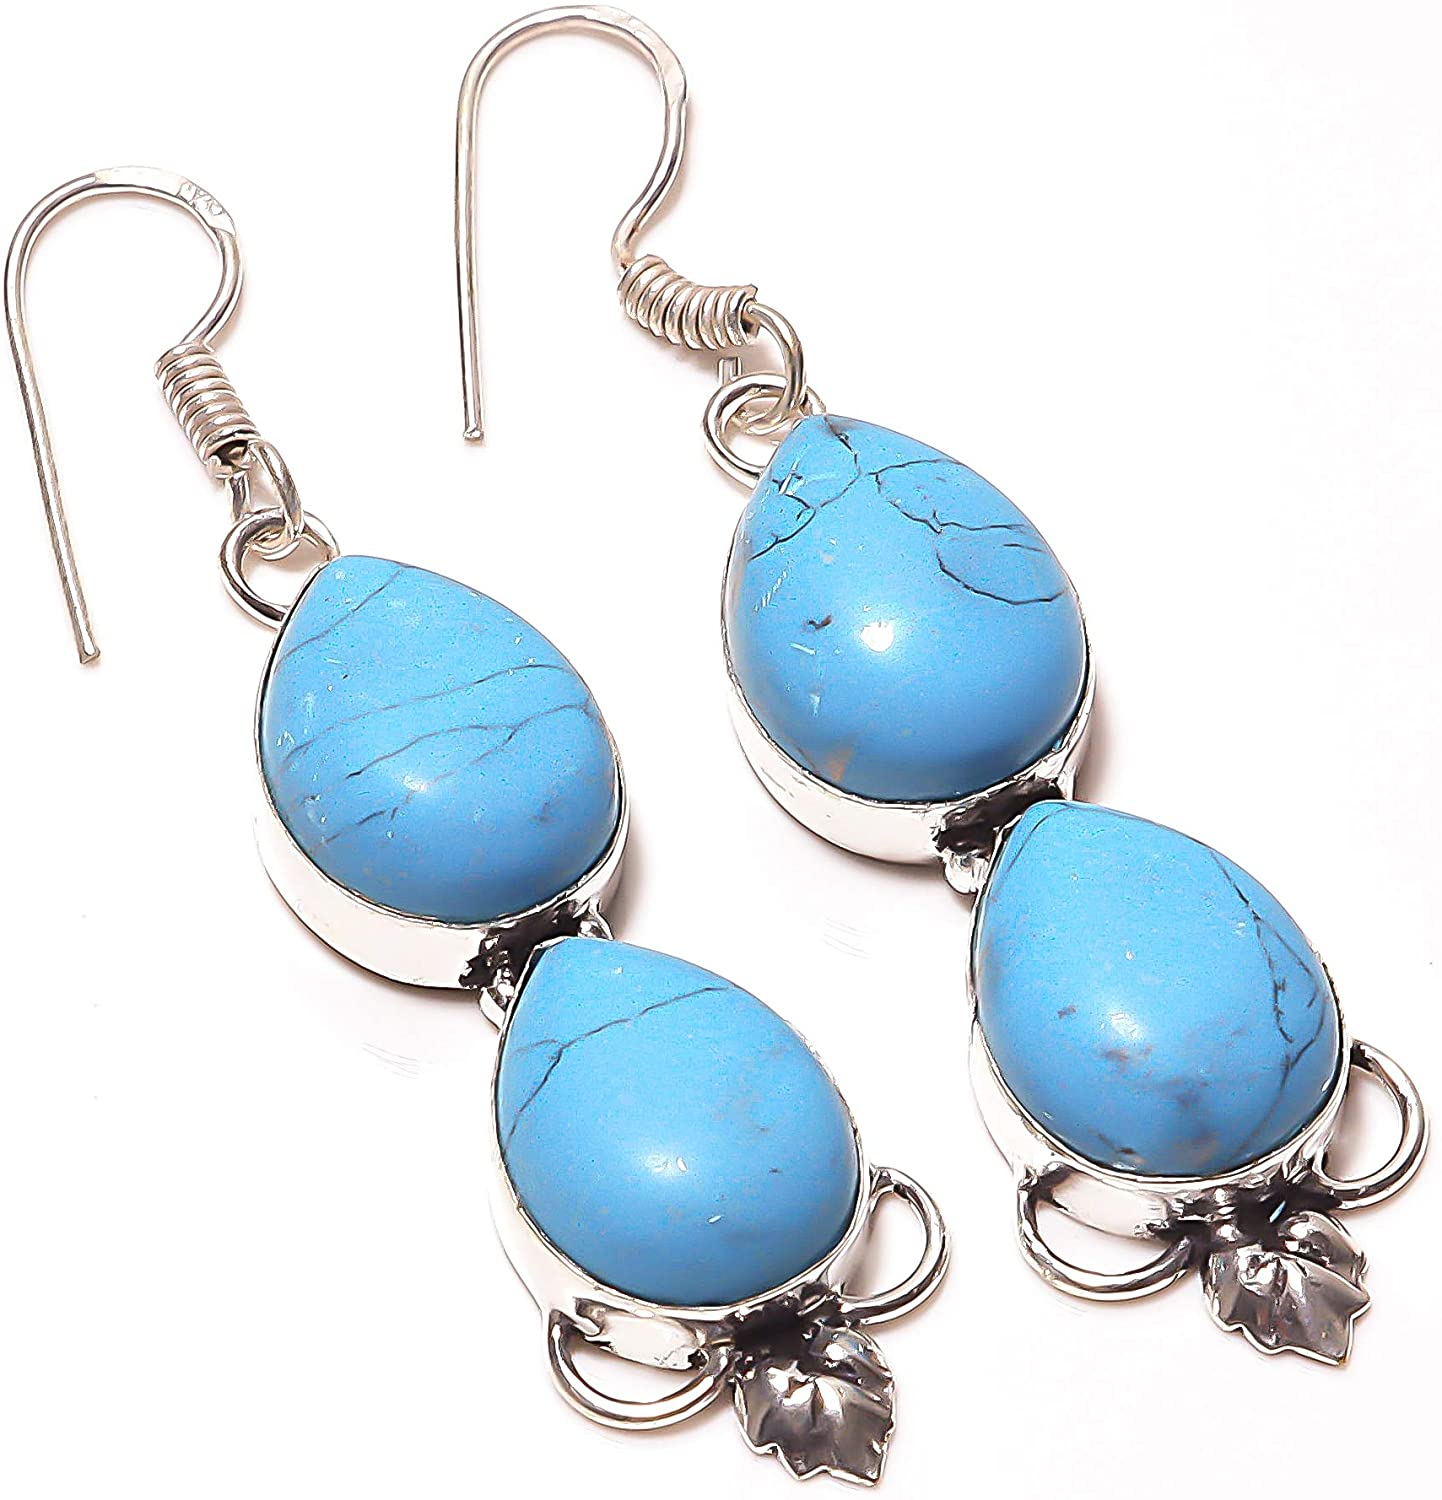 Latest Design! Blue Turquoise HANDMADE Jewelry Sterling Silver Plated Earring 2.25